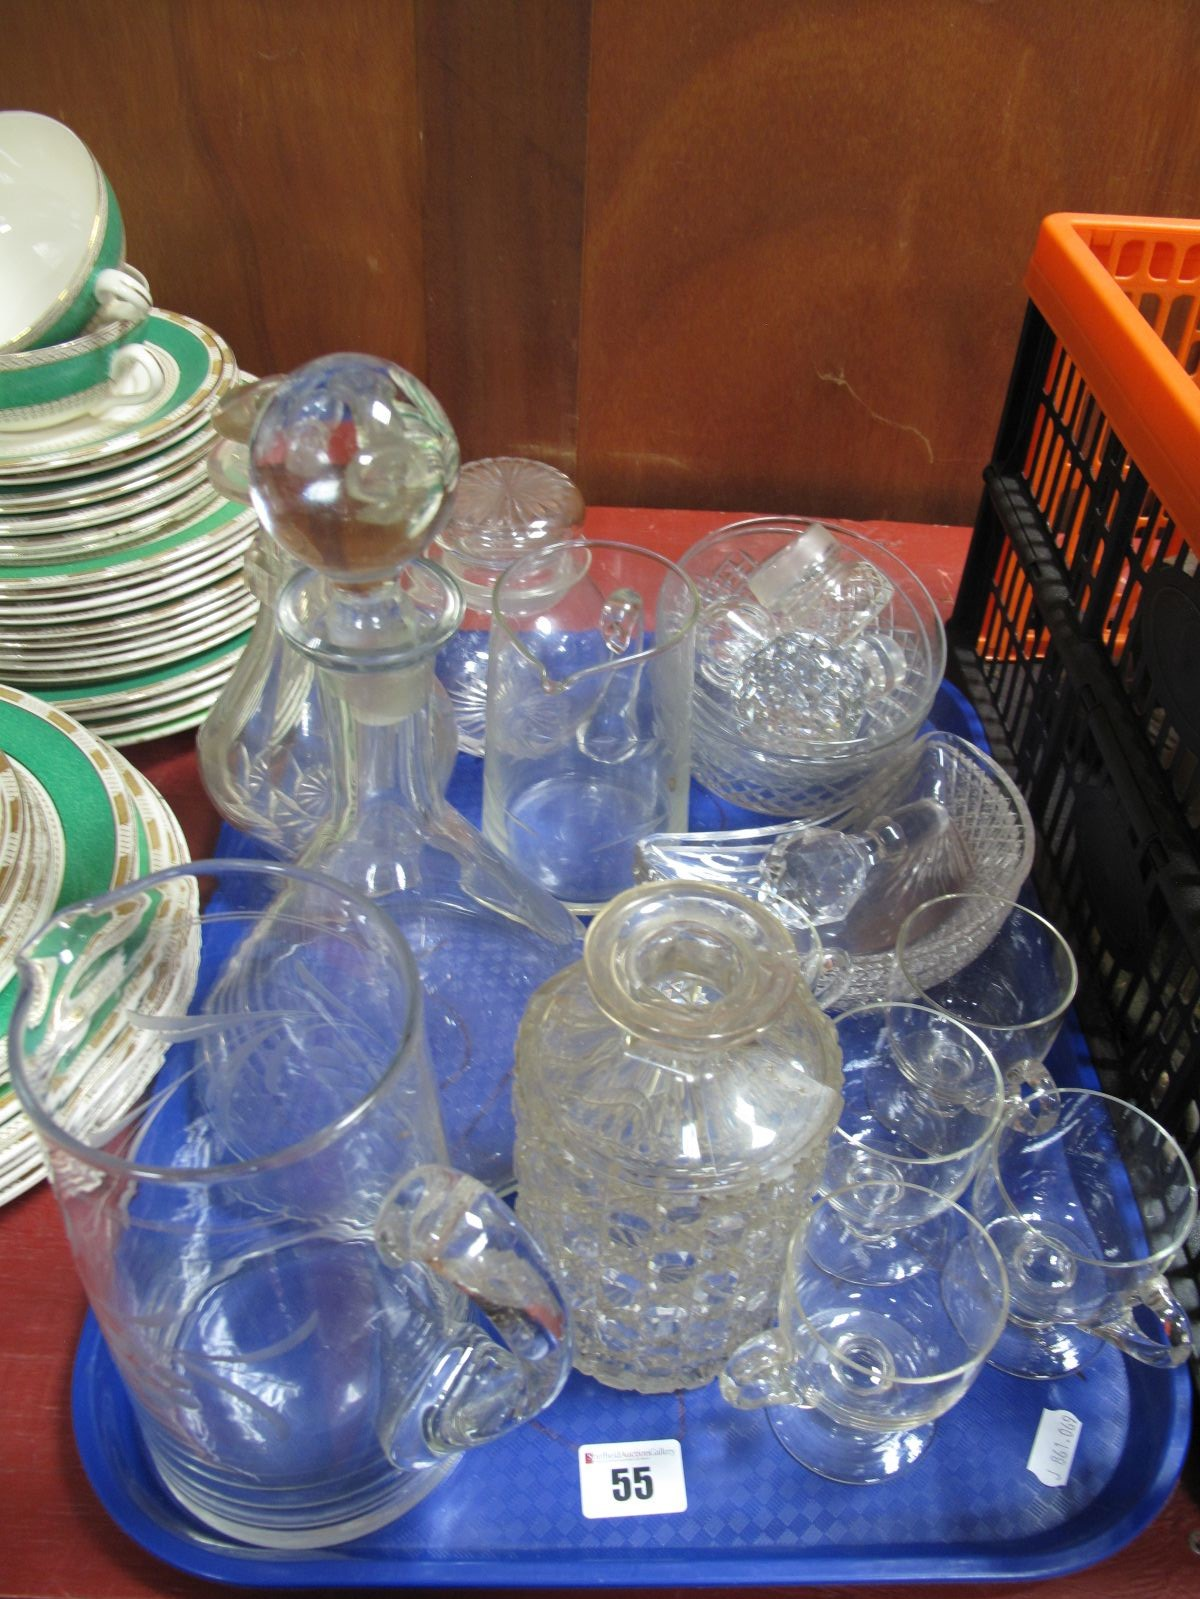 Lot 55 - Custard Glasses, decanters, bowls, etc:- One Tray